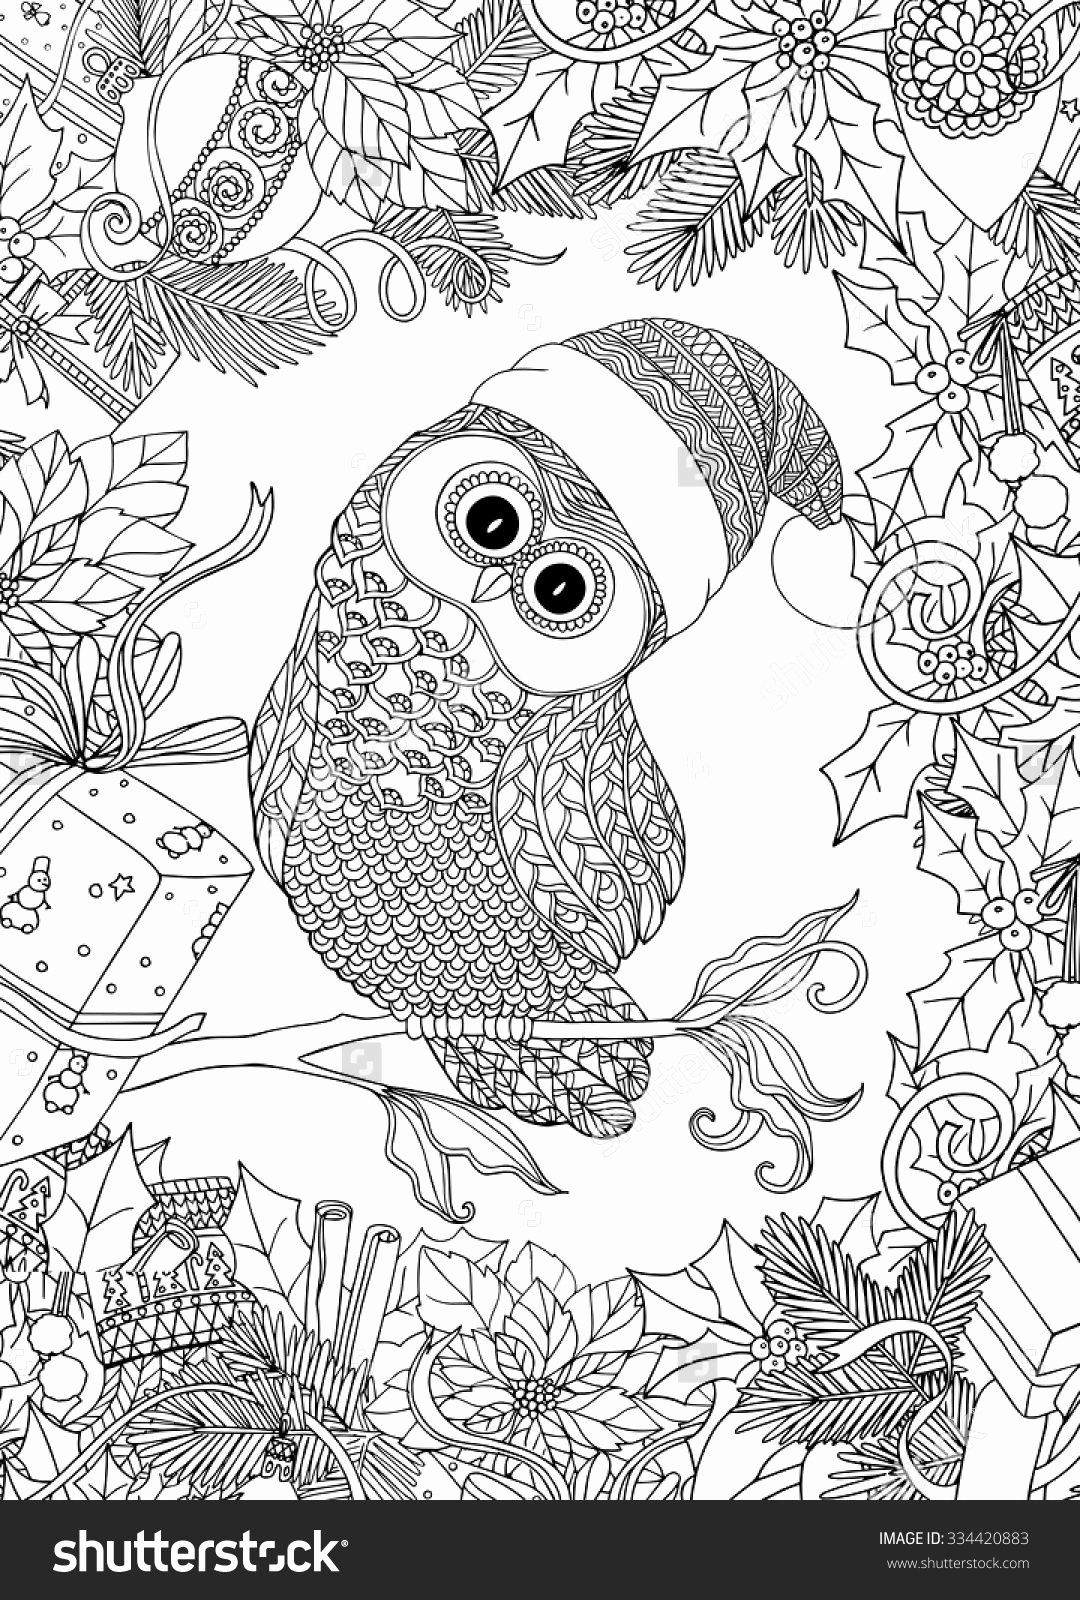 Christmas Coloring Activities For Preschoolers With